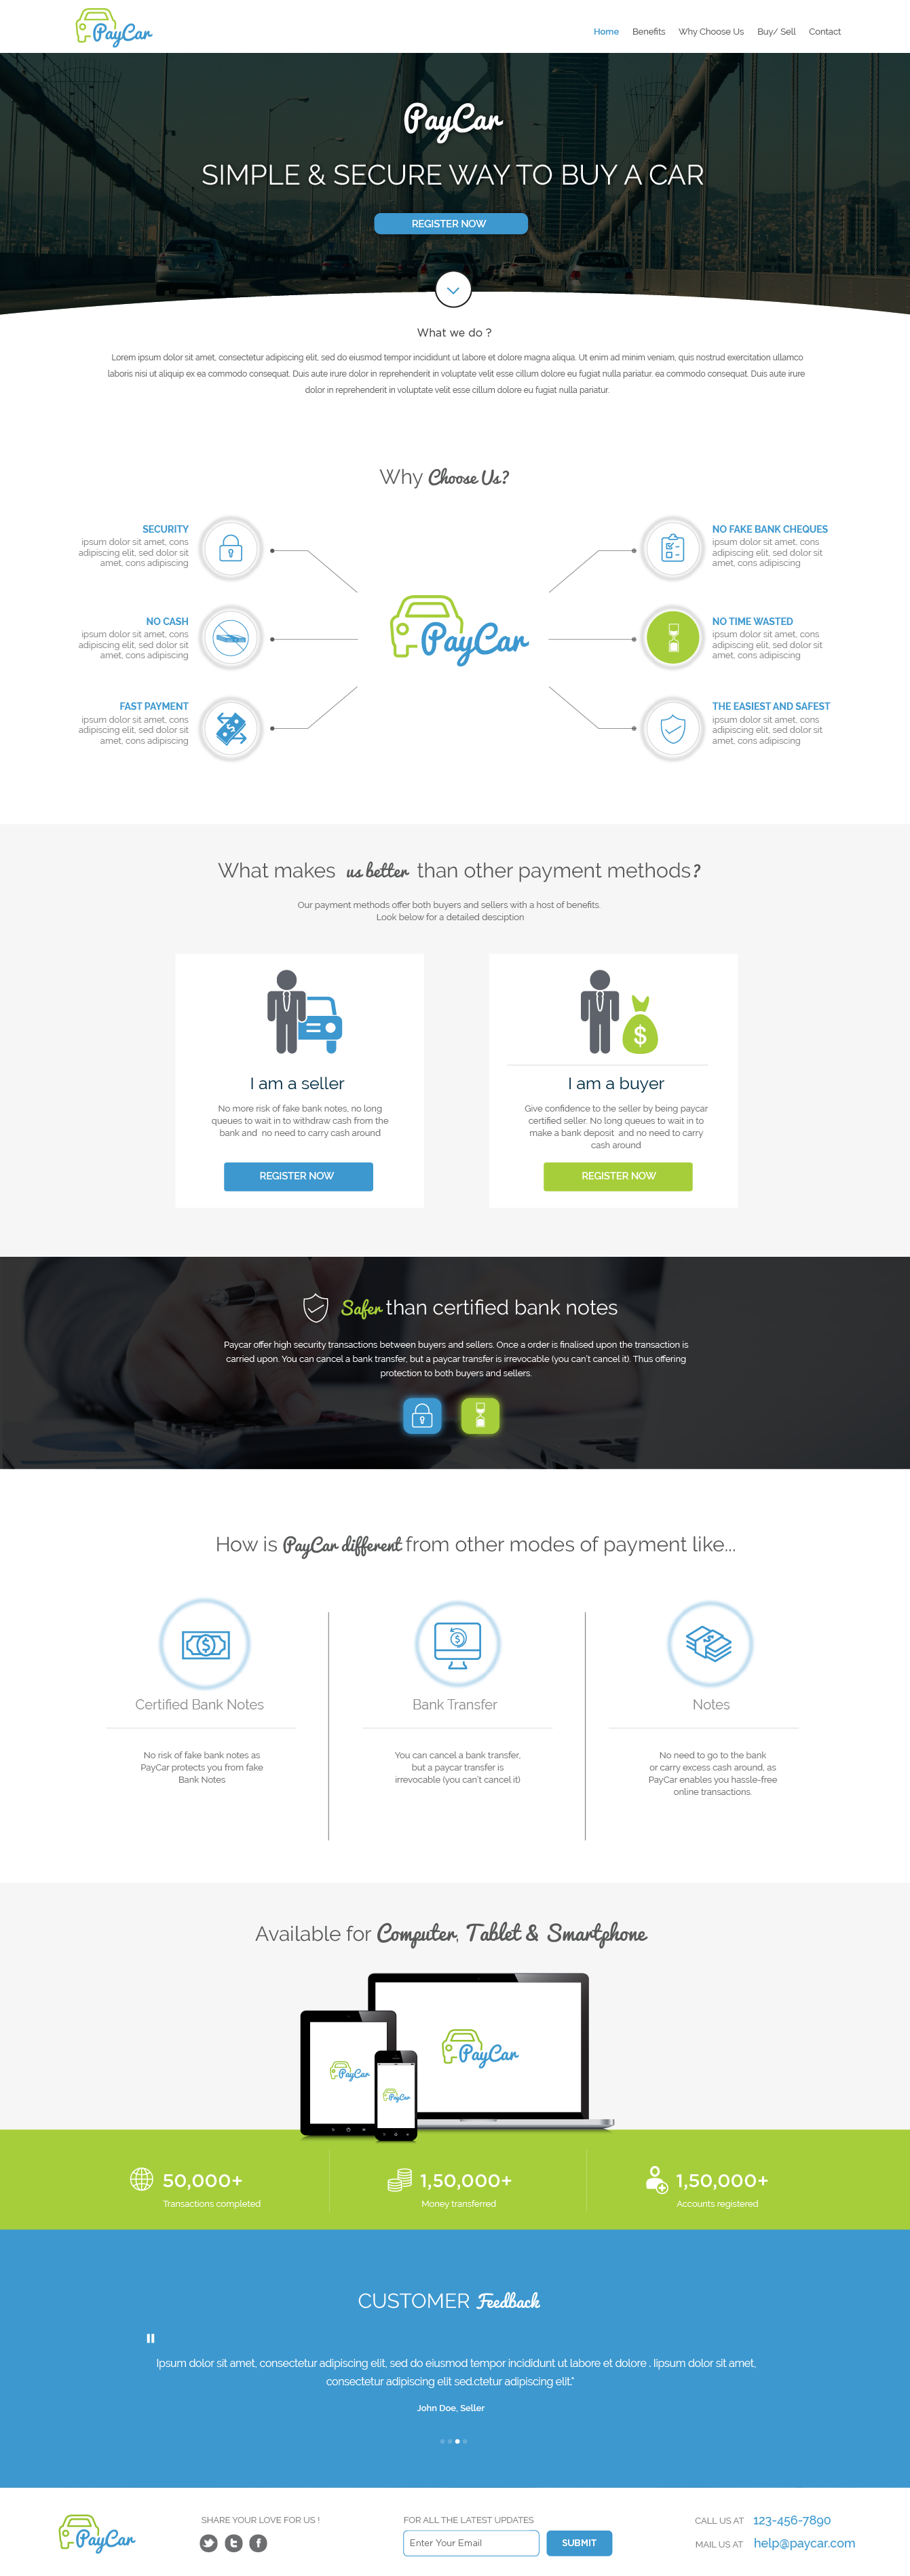 Create a Website design for a paypal competitor for used cars and motor bikes (price is guaranteed)